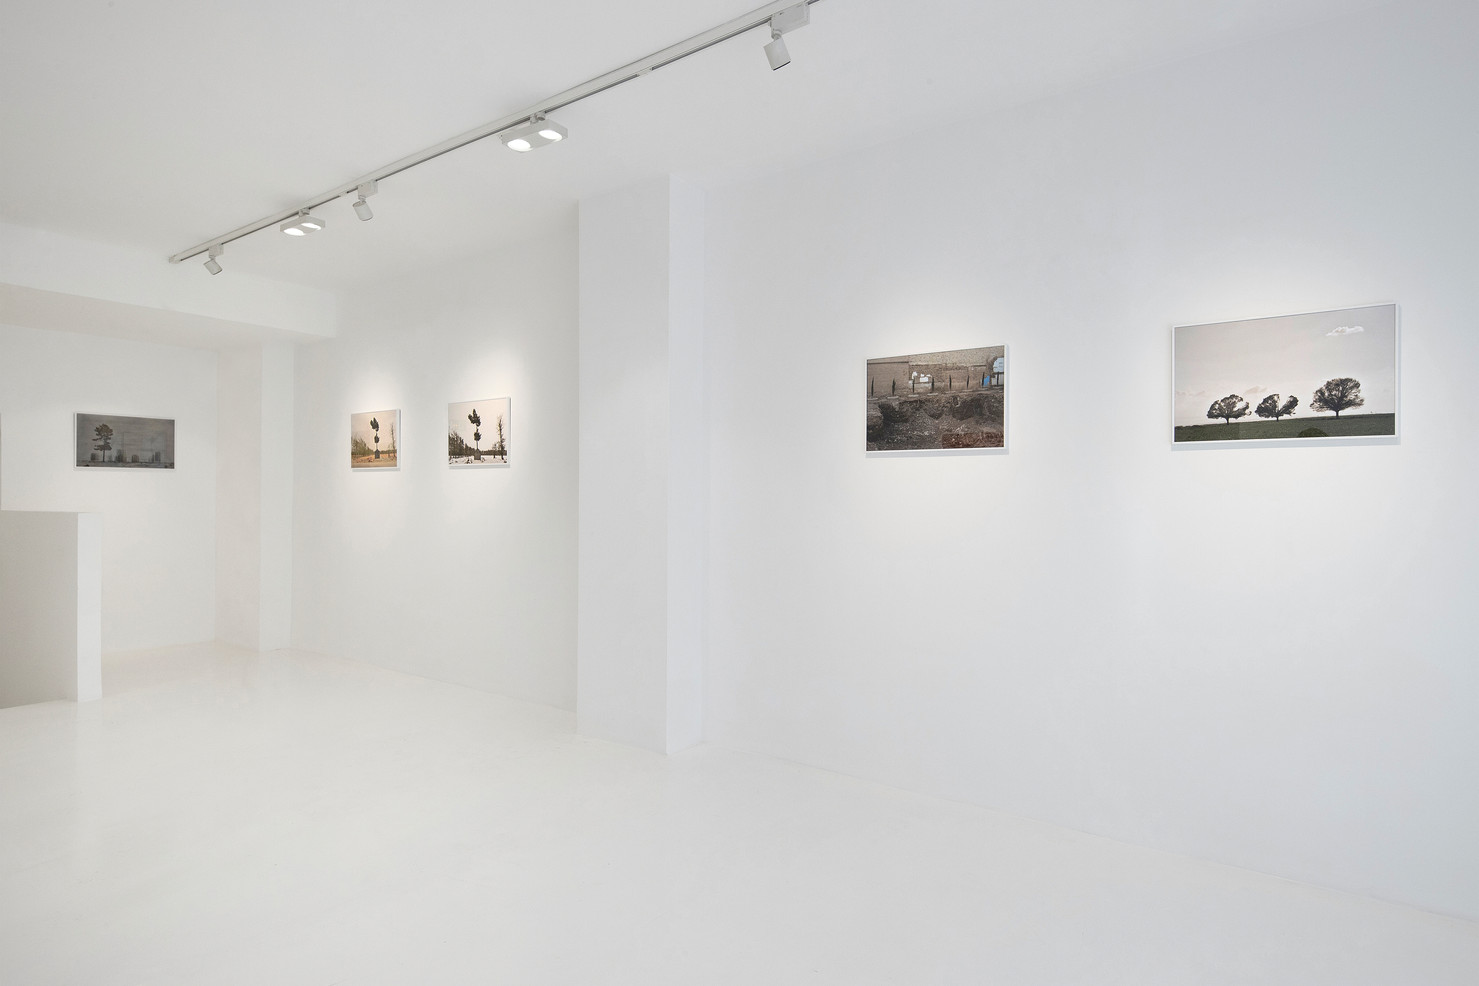 Installation View: All works are Untitled, 2014 - 2019 Print on Epson paper  40 x 60 cm; Photo: Loic Thebaud © Galerie Maria Behnam-Bakhtiar